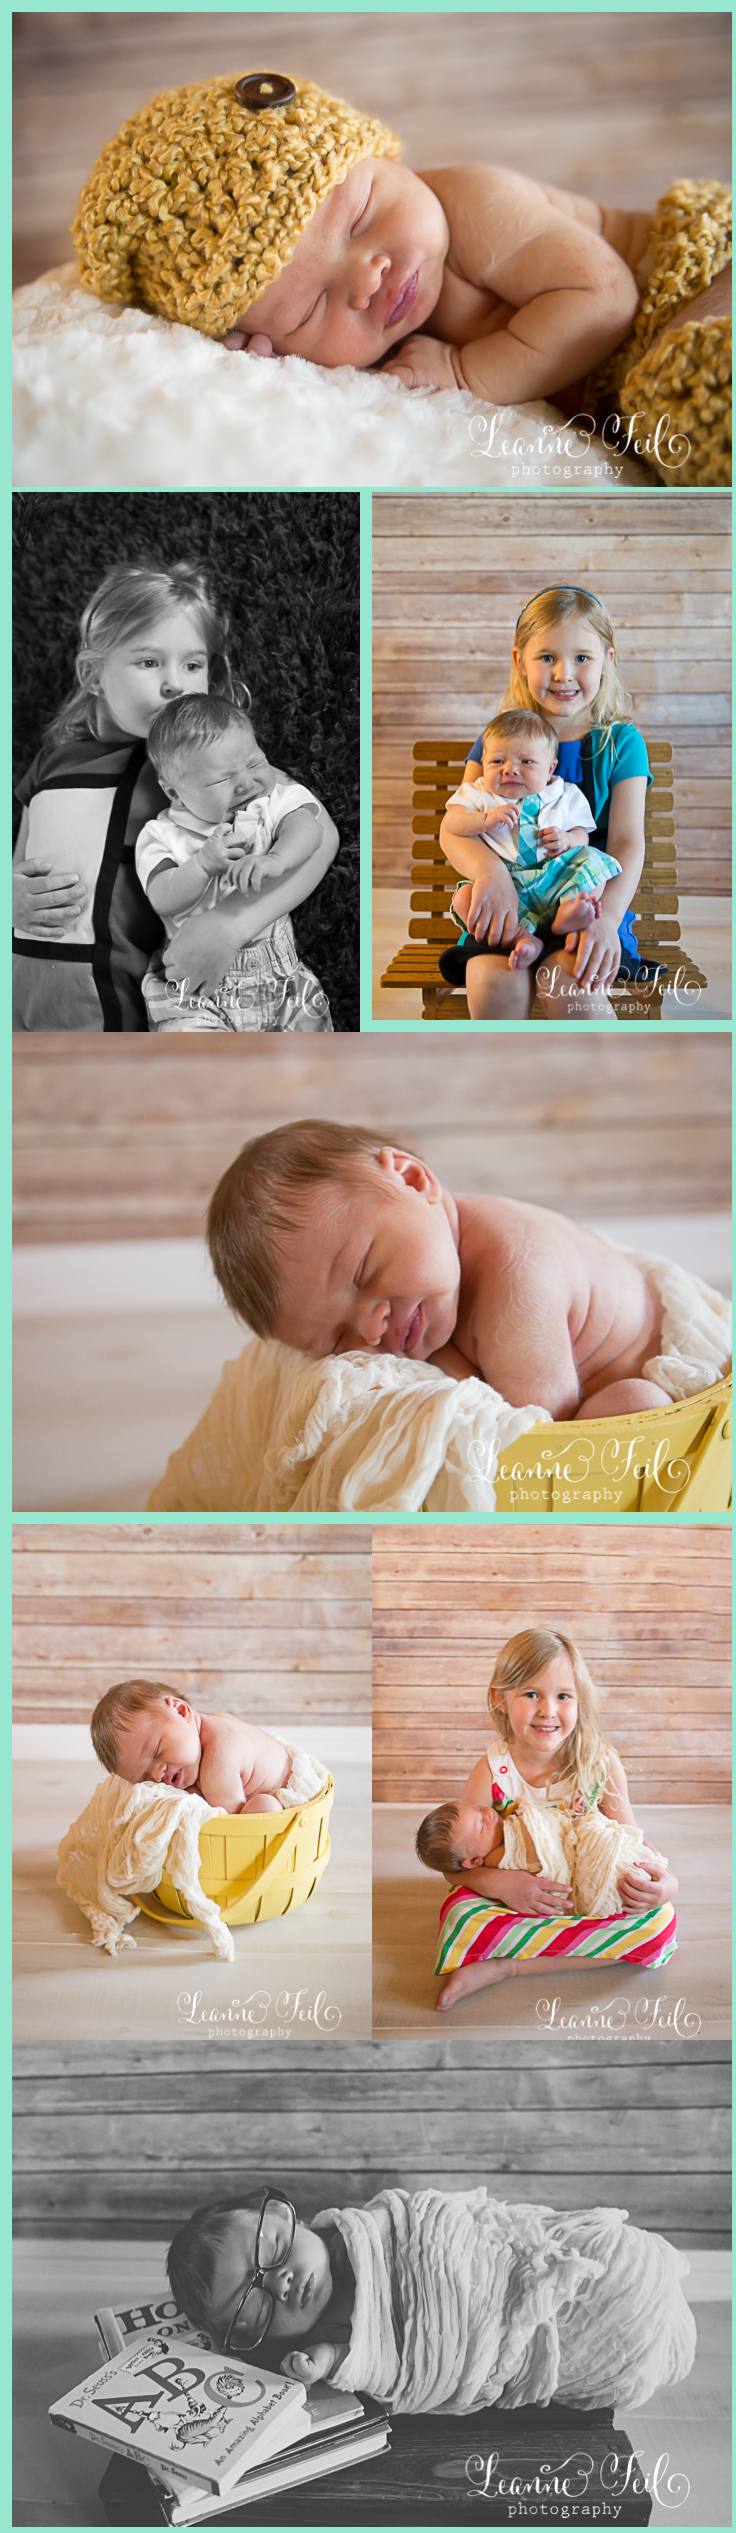 Leanne Feil Photography ~ Butler, PA Newborn Photographer